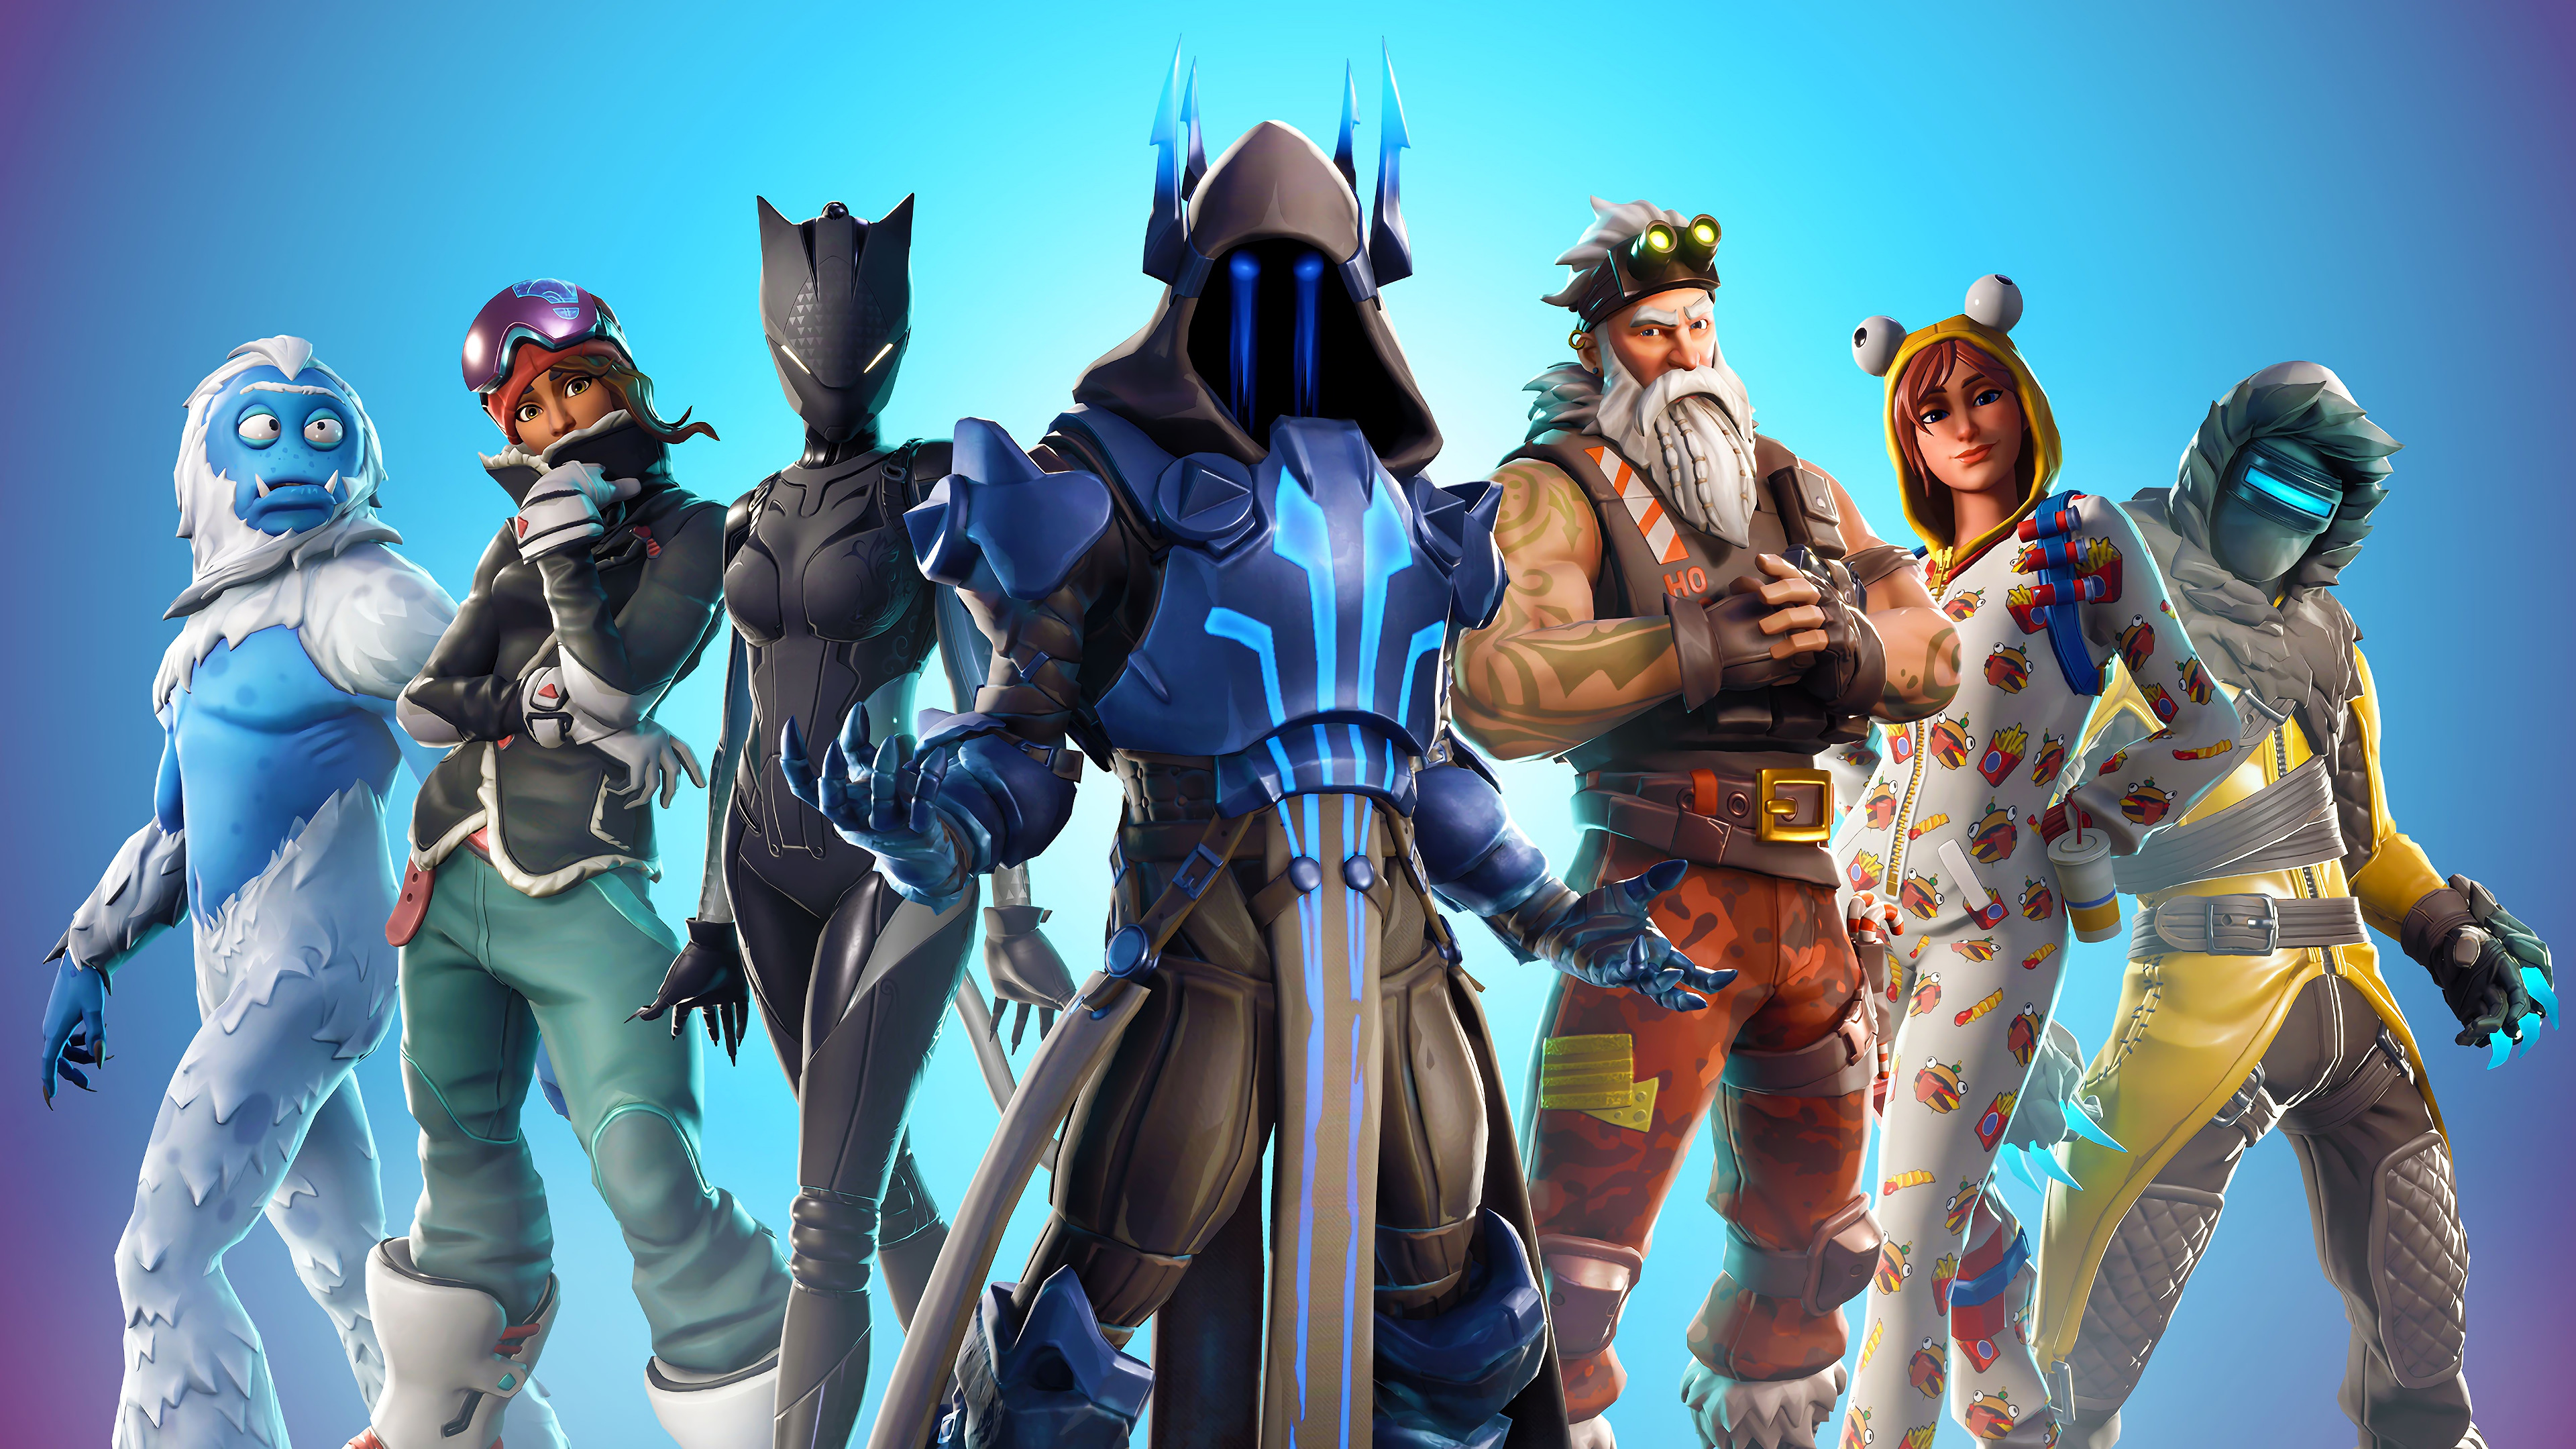 800x1280 Fortnite Season 7 2018 Nexus 7 Samsung Galaxy Tab